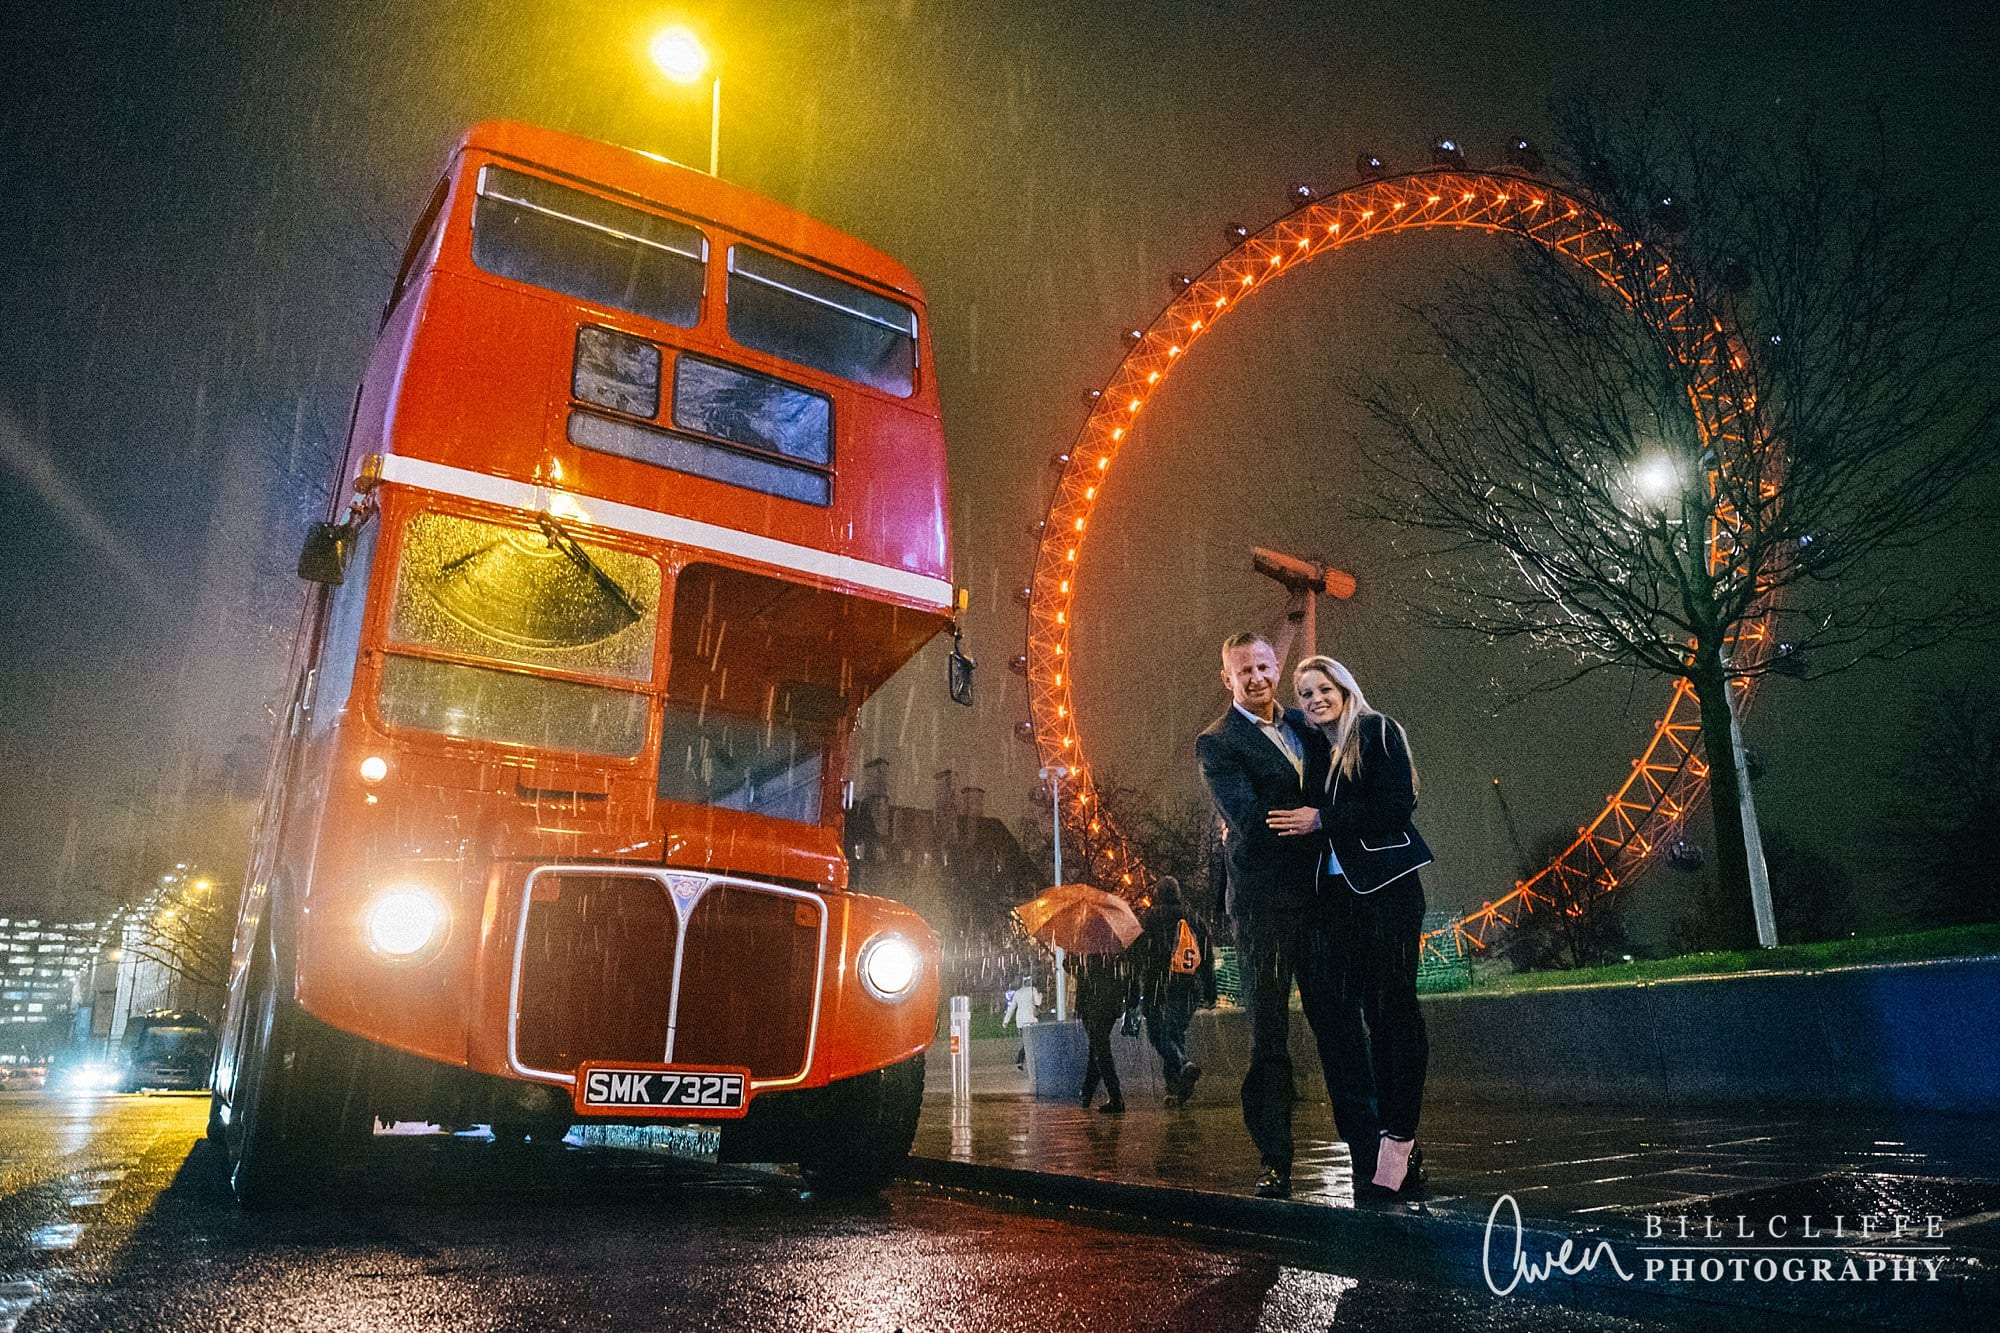 london engagement proposal photographer routemaster RE 016 - When Richard Proposed To Emma on a London Routemaster Bus